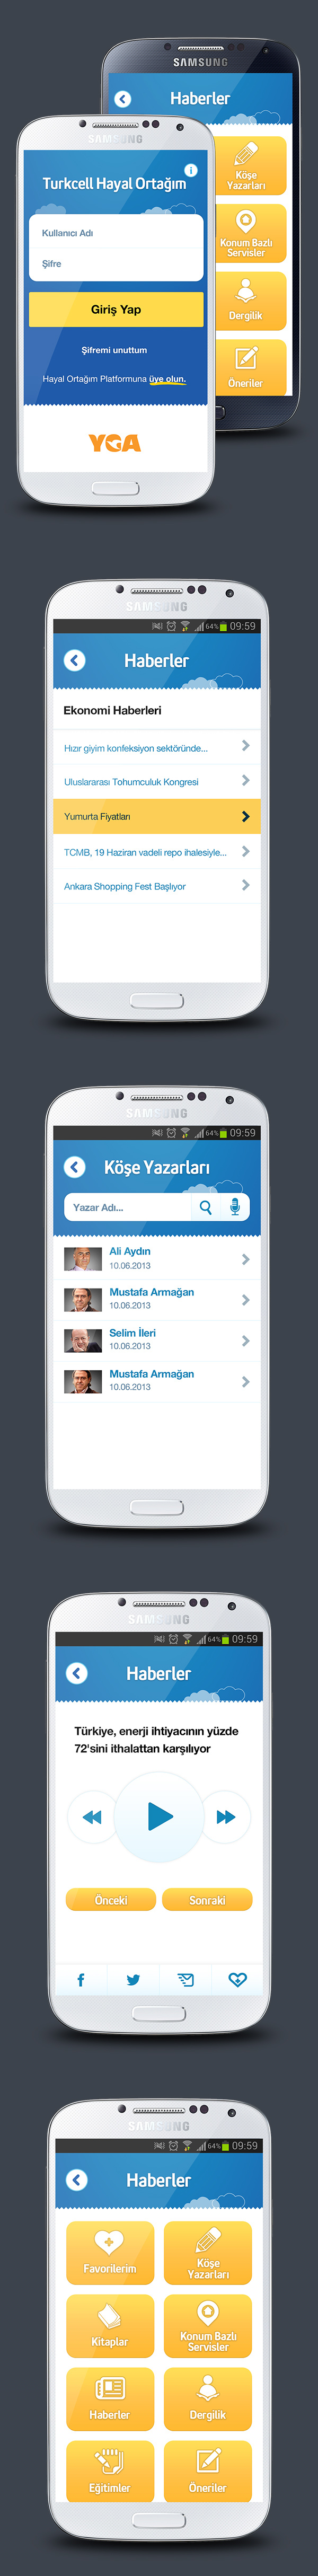 Turkcell android Samsung hayal mobile design best blue cloud